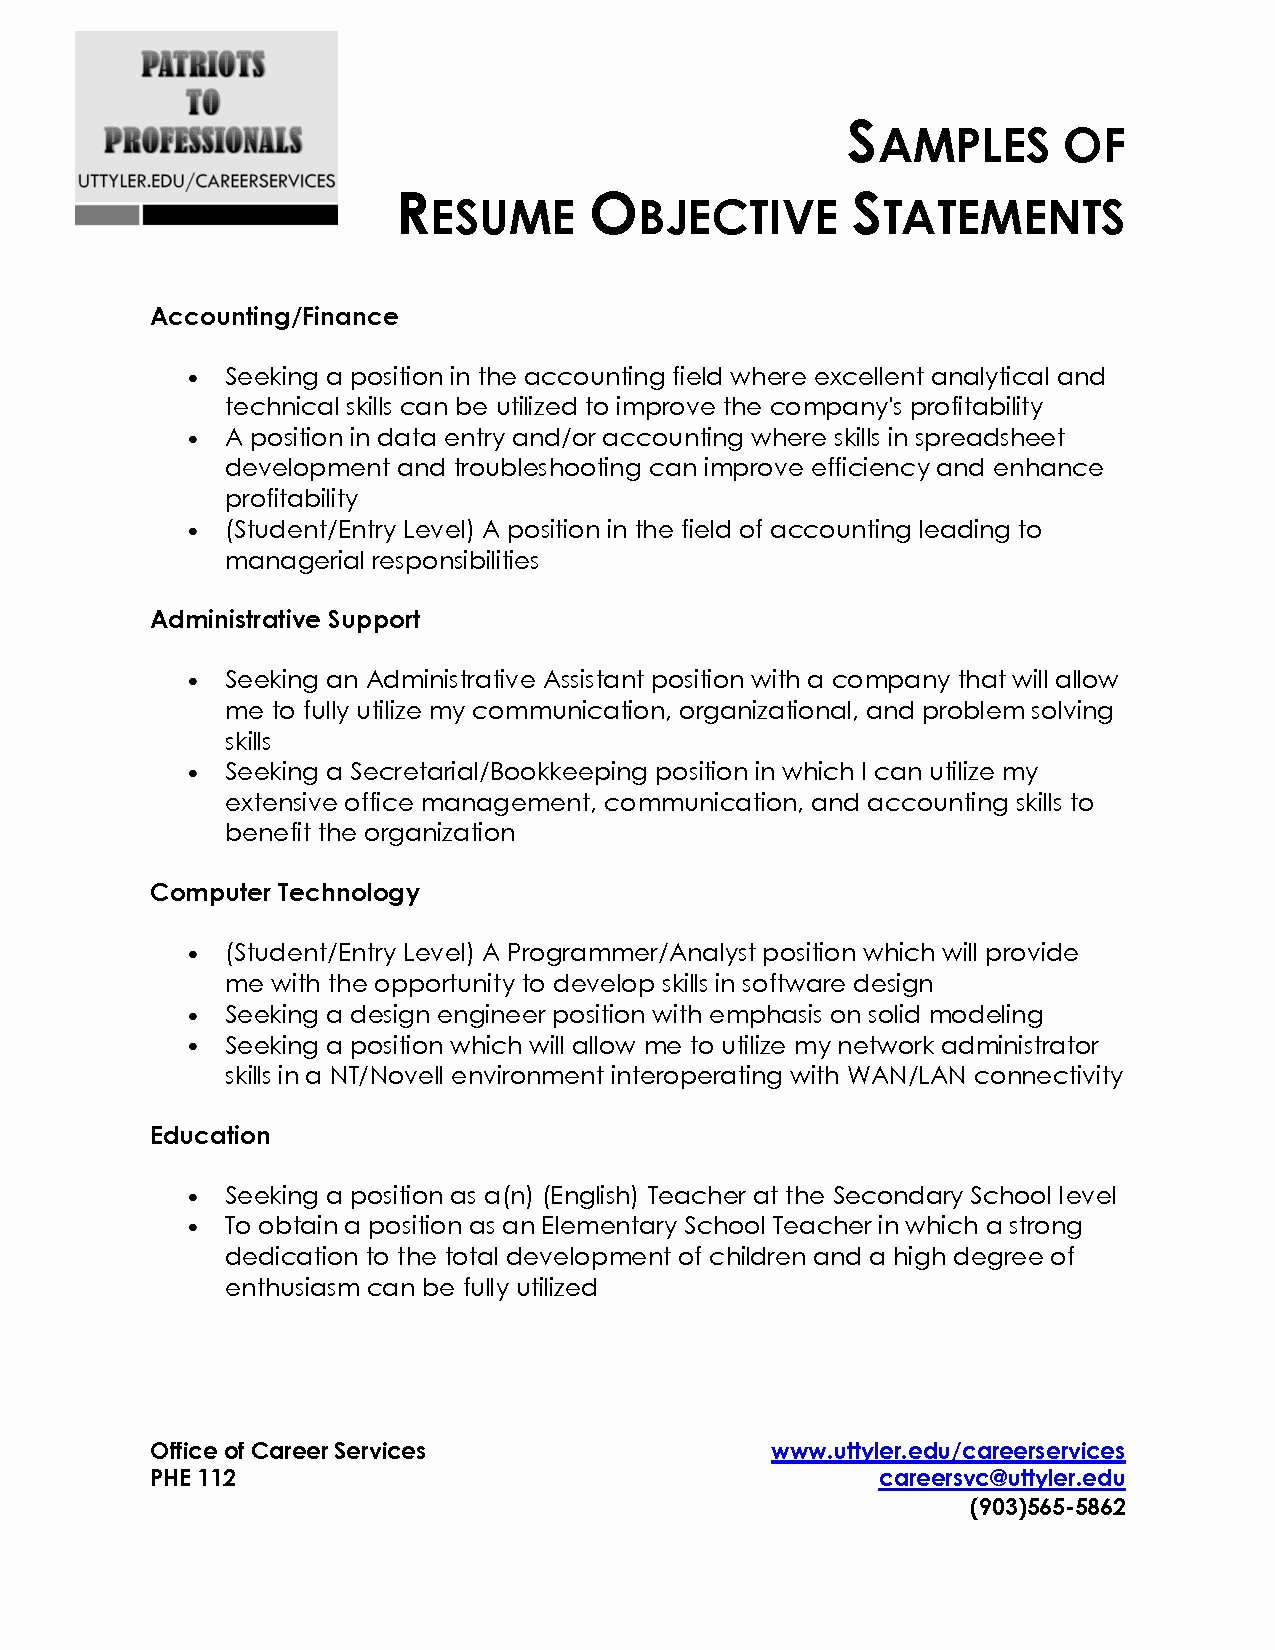 Sample Entry Level Resume Objective Statements